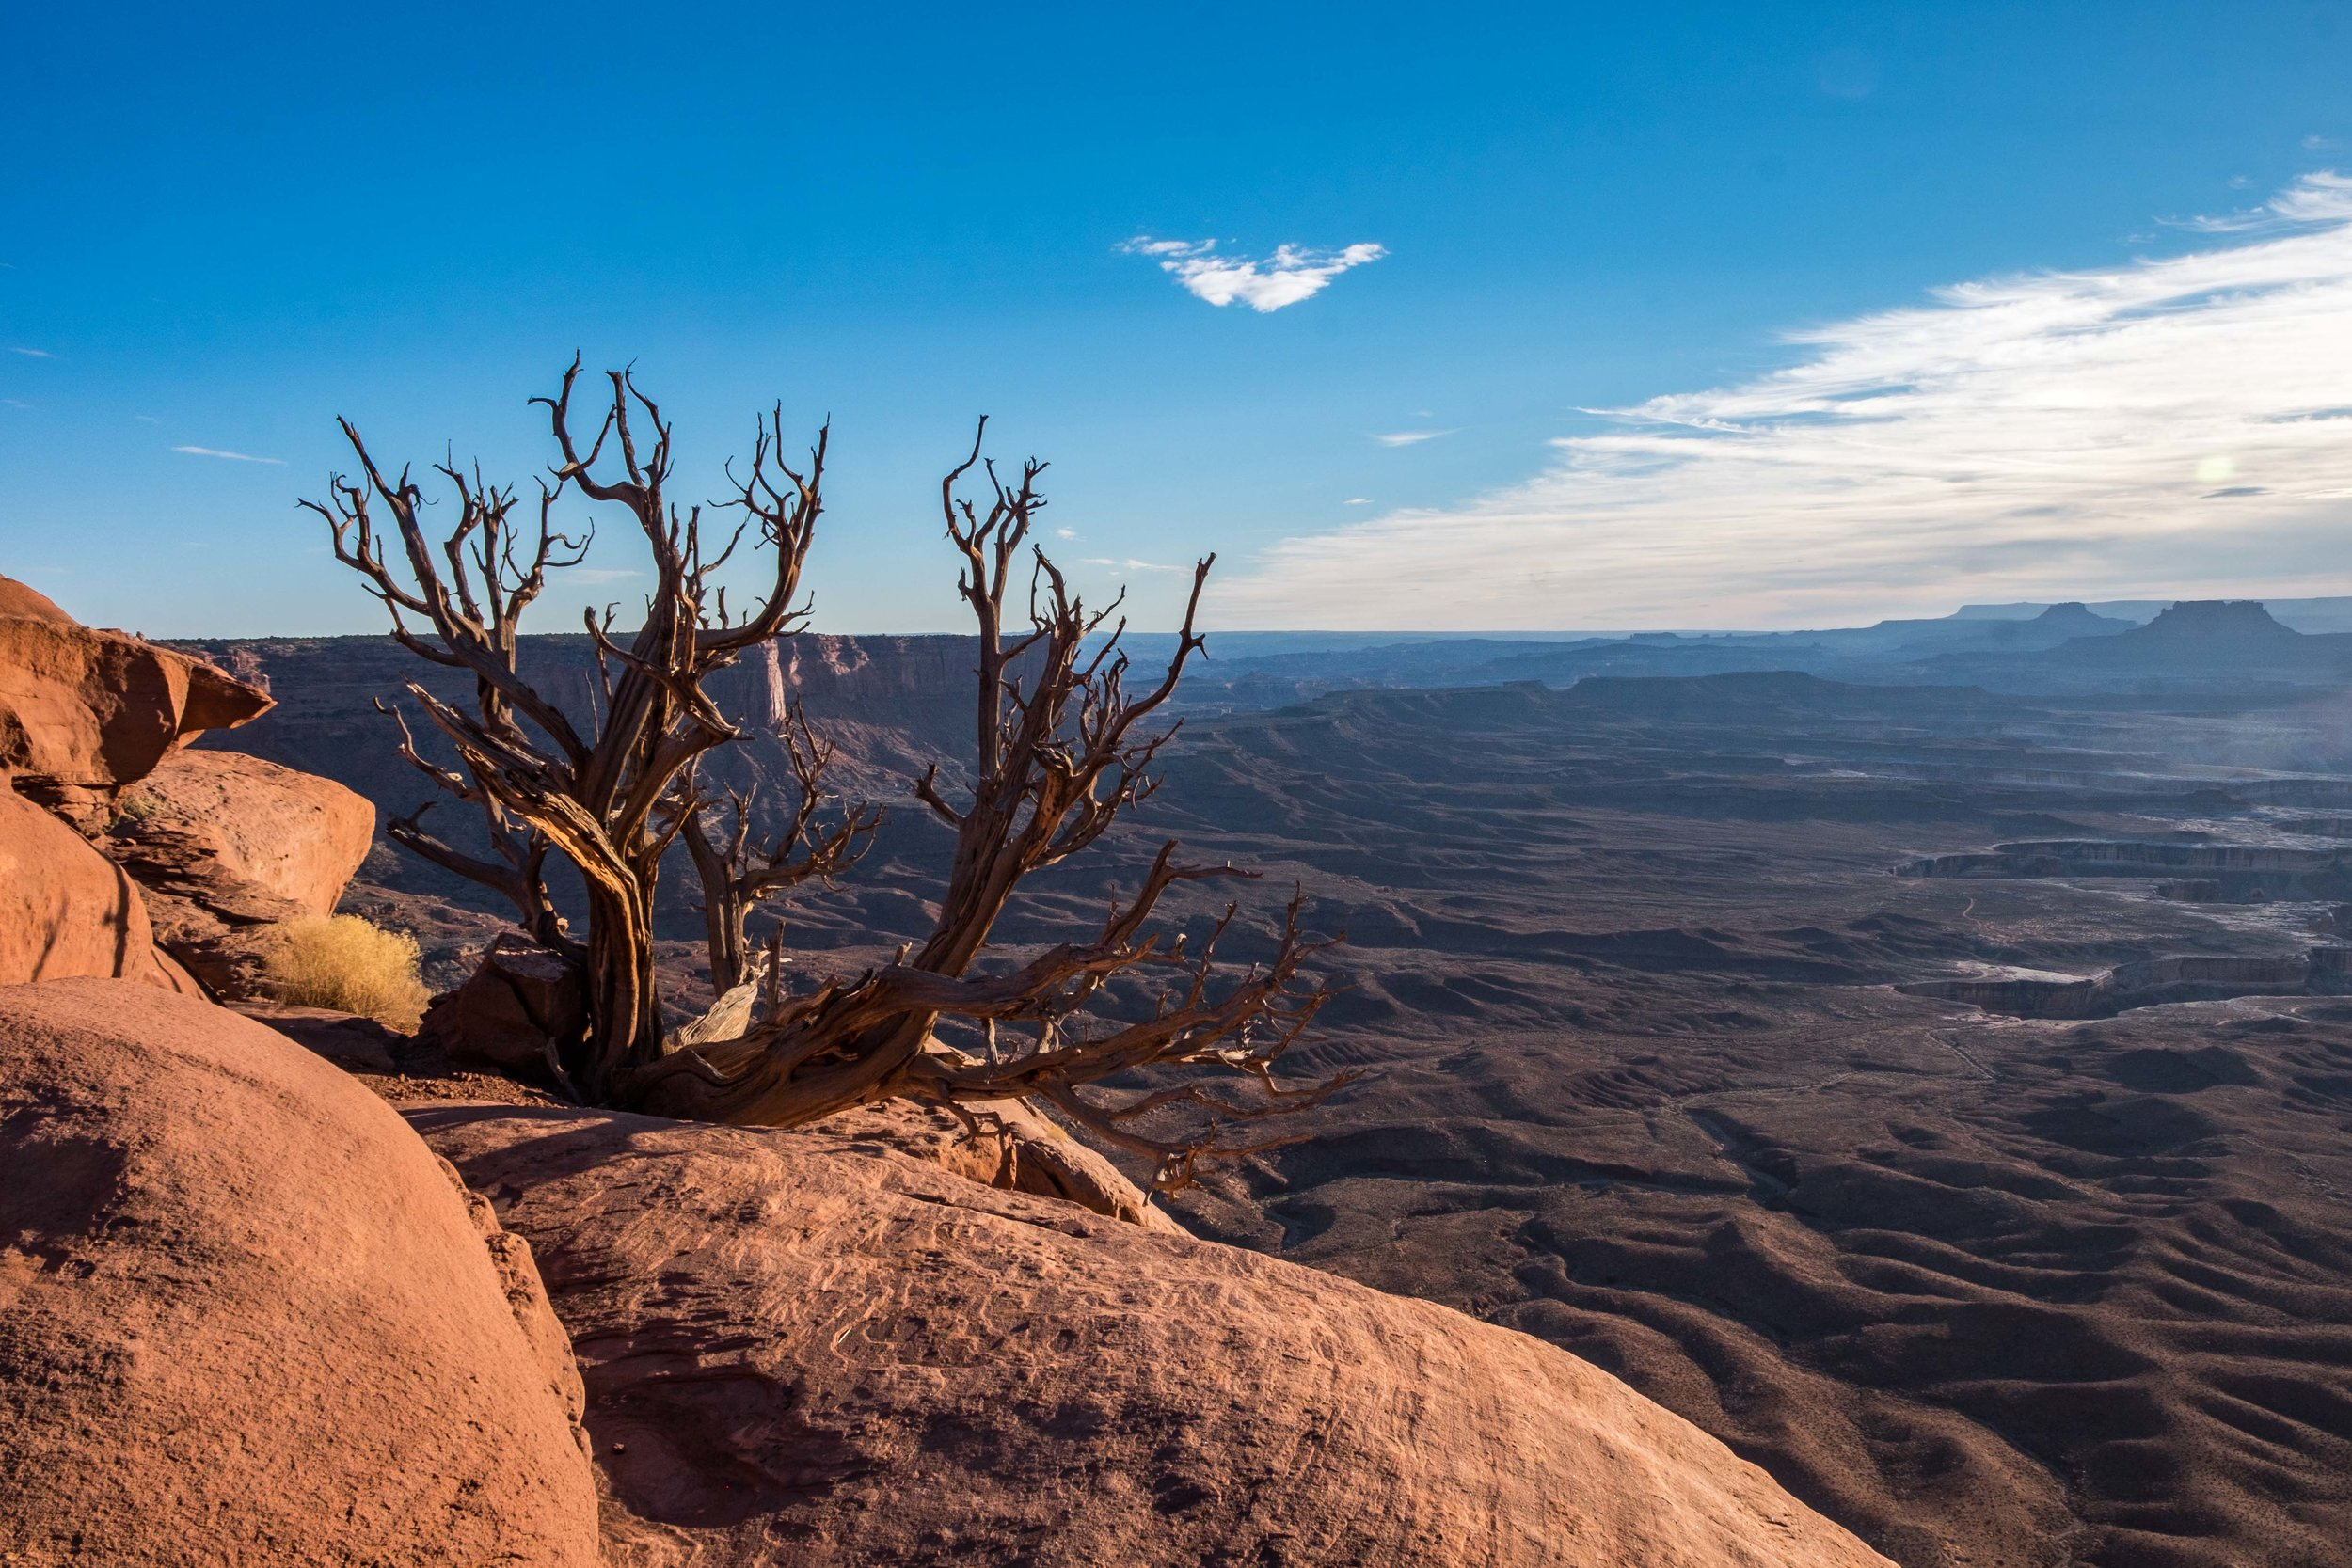 Our first stop was the Islands in the Sky section, the most visited area of Canyonlands.